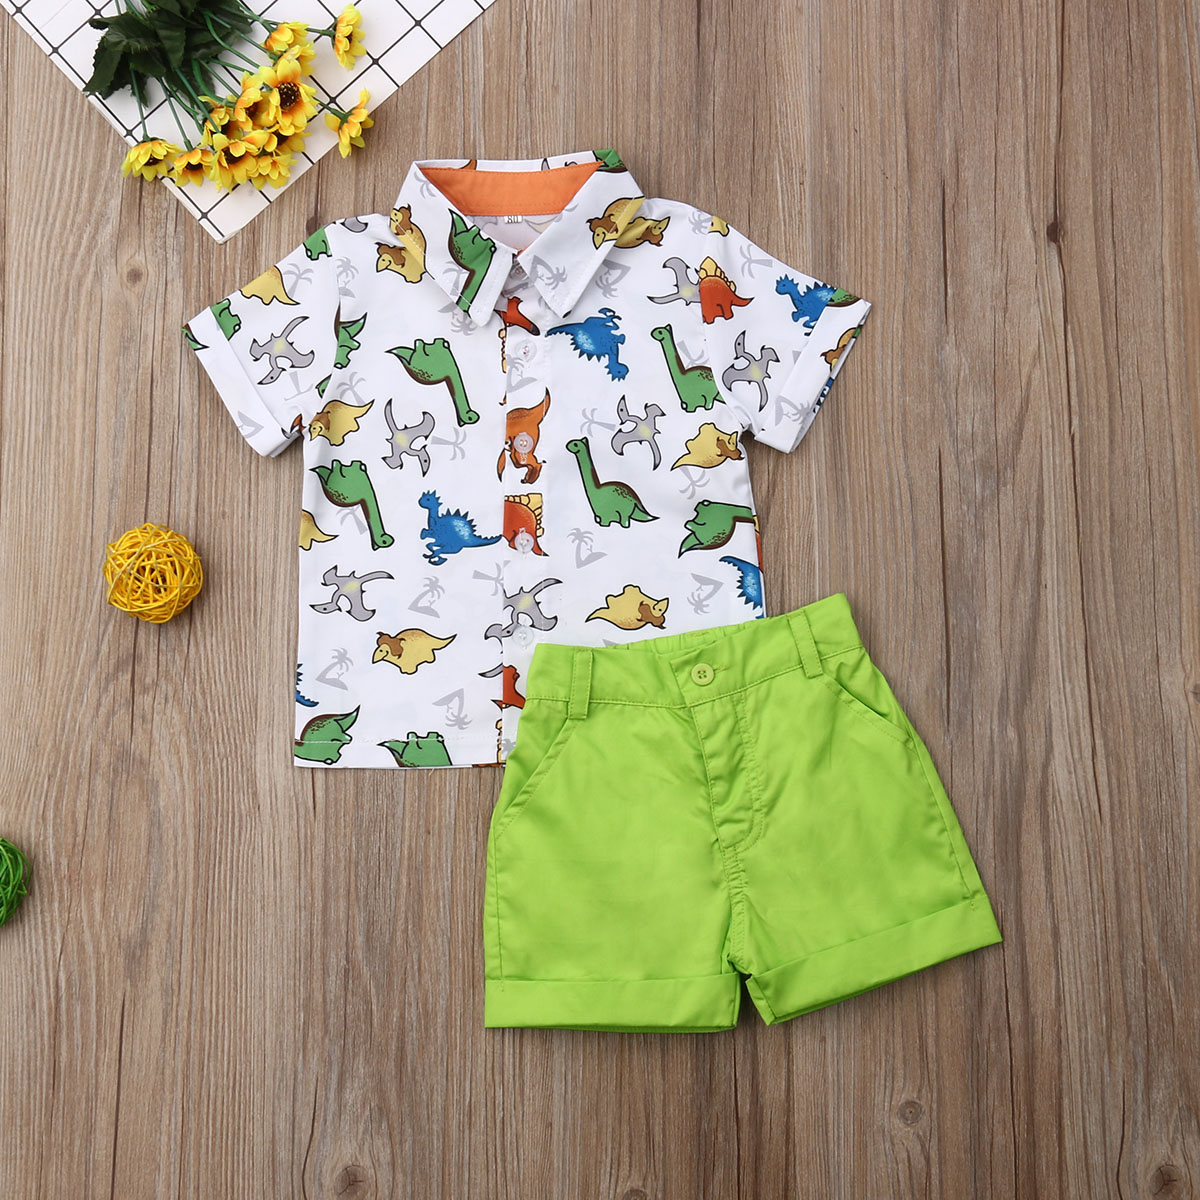 Emmababy Summer Toddler Baby Boy Clothes Multi Dinosaur Print Shirt Tops Short Pants 2Pcs Outfits Casual Clothes Summer